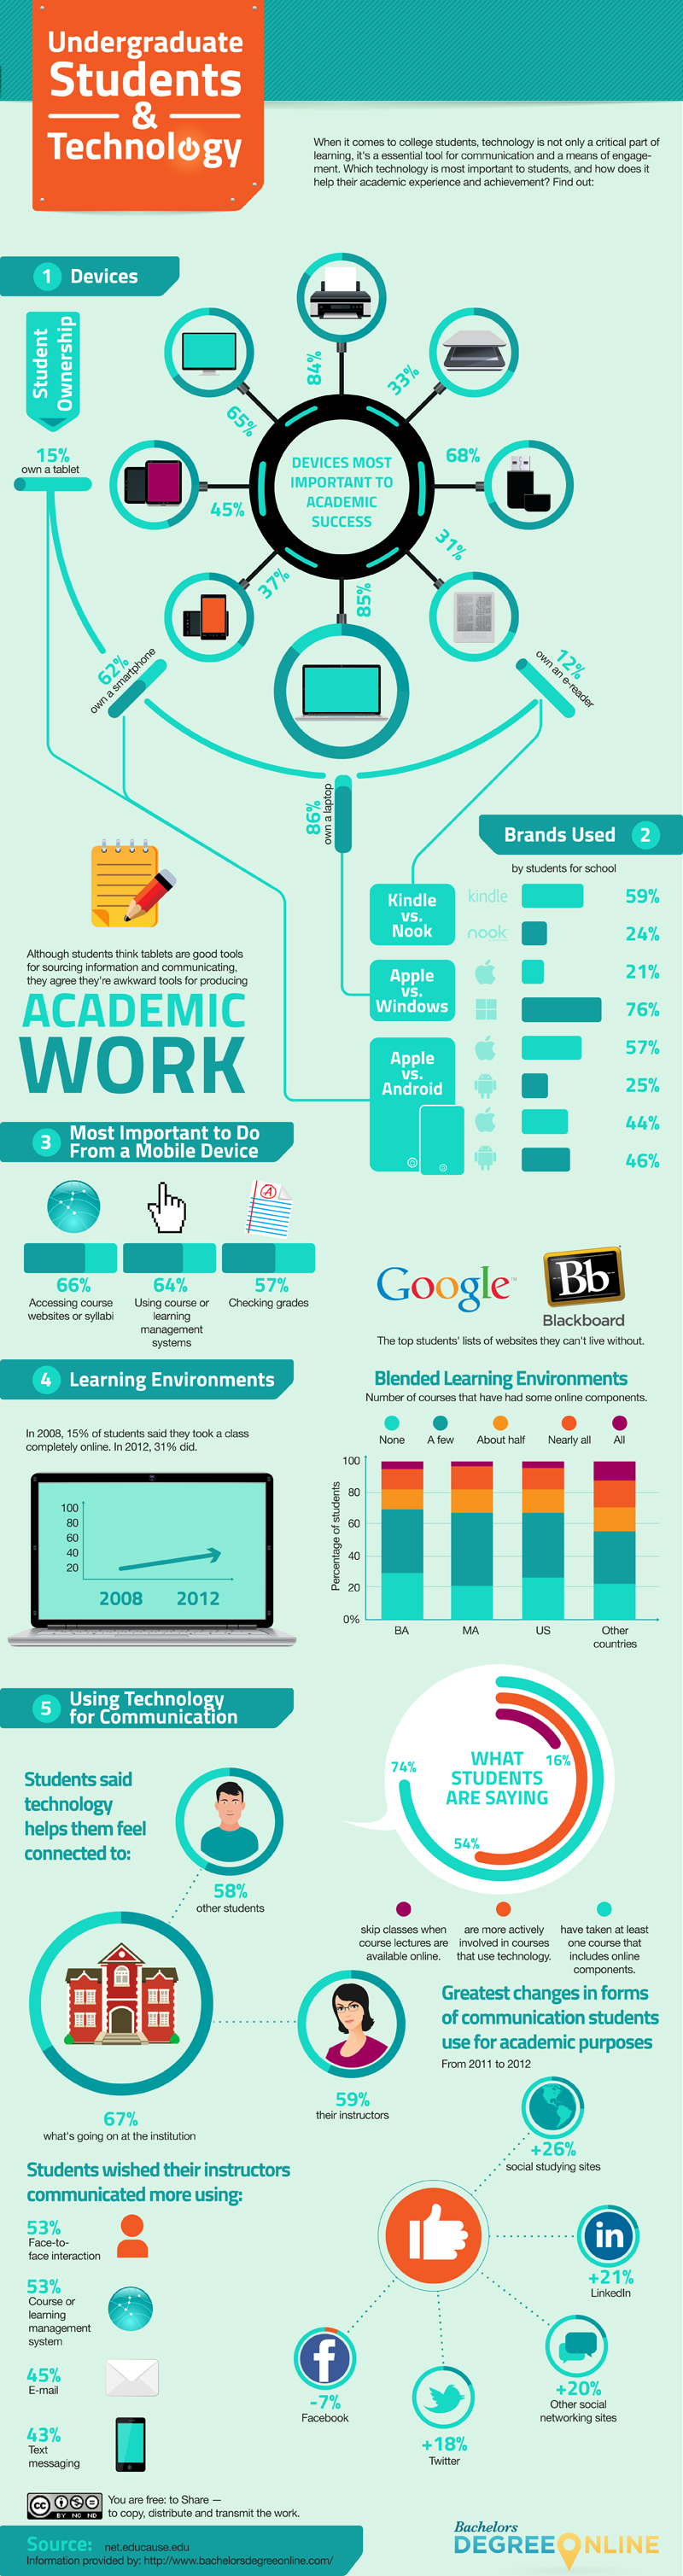 Infographic attribution bachelorsdegreeonline; image attribution flickr user usnavalwarcollege